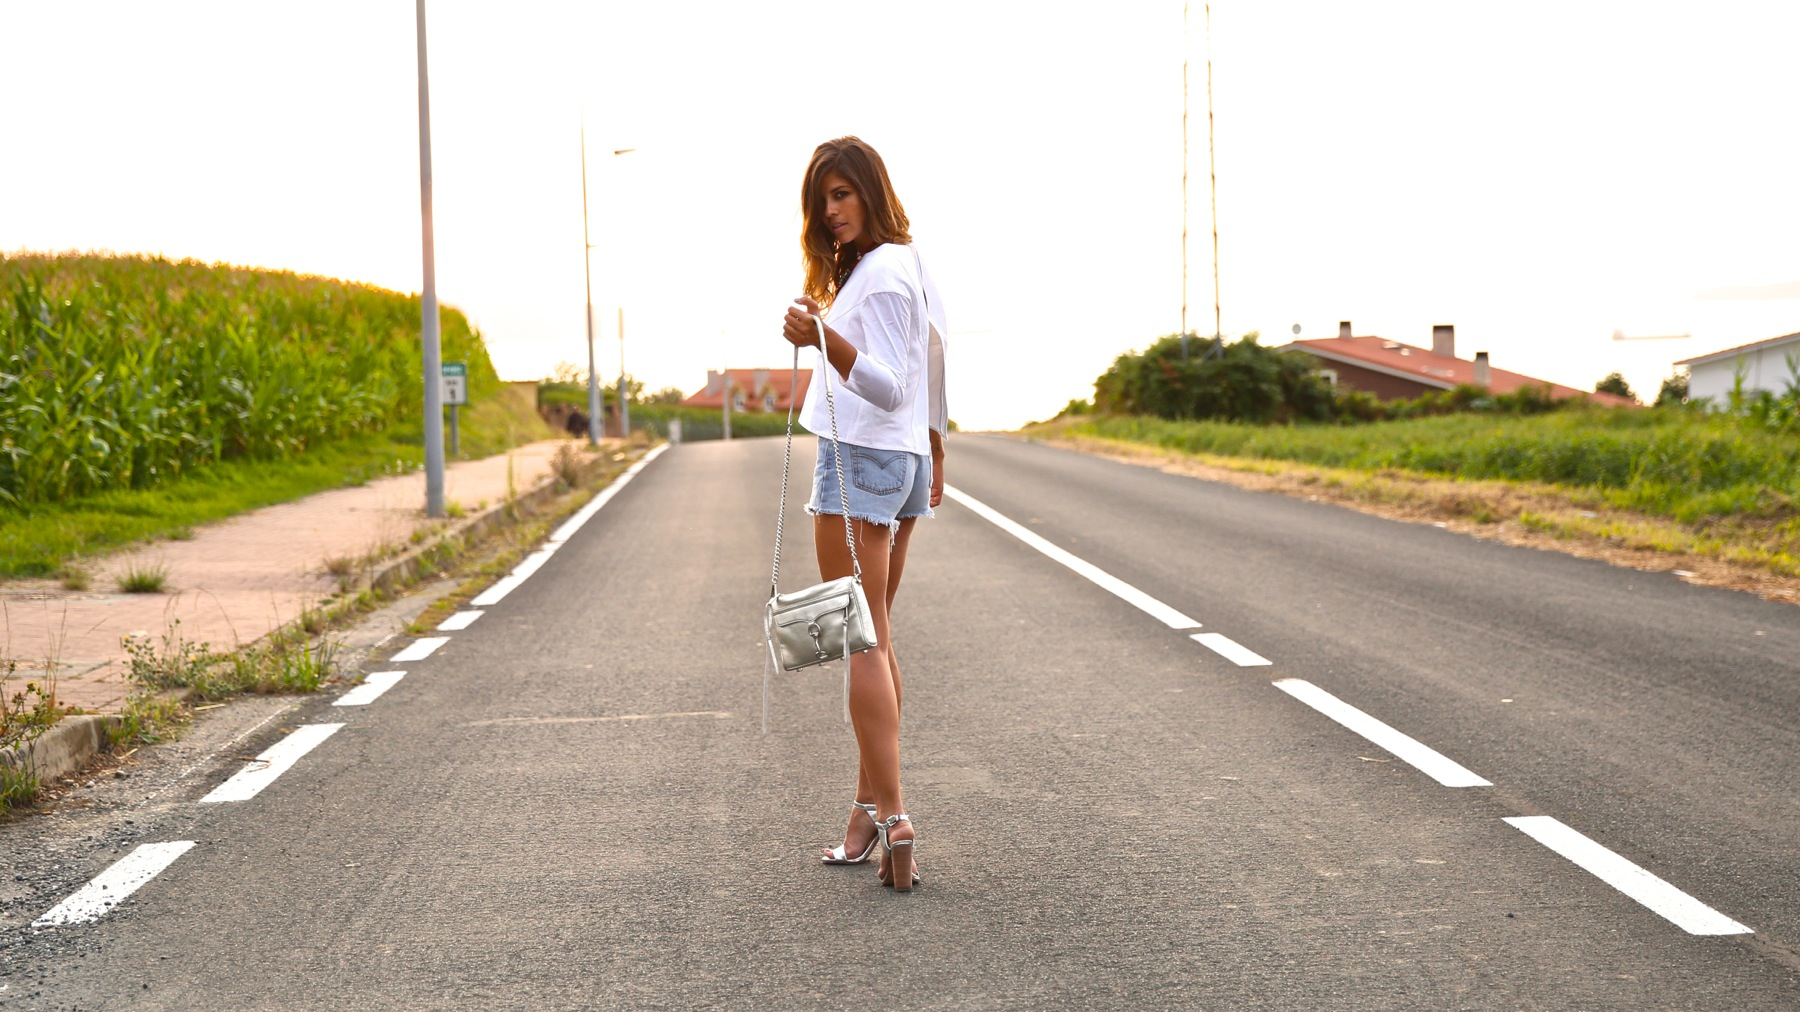 trendy_taste-look-outfit-street_style-ootd-blog-blogger-fashion_spain-moda_españa-coach-silver_sandals-sandalias_plata-white_top-top_blanco-levi's-denim_shorts-shorts_vaqueros-11